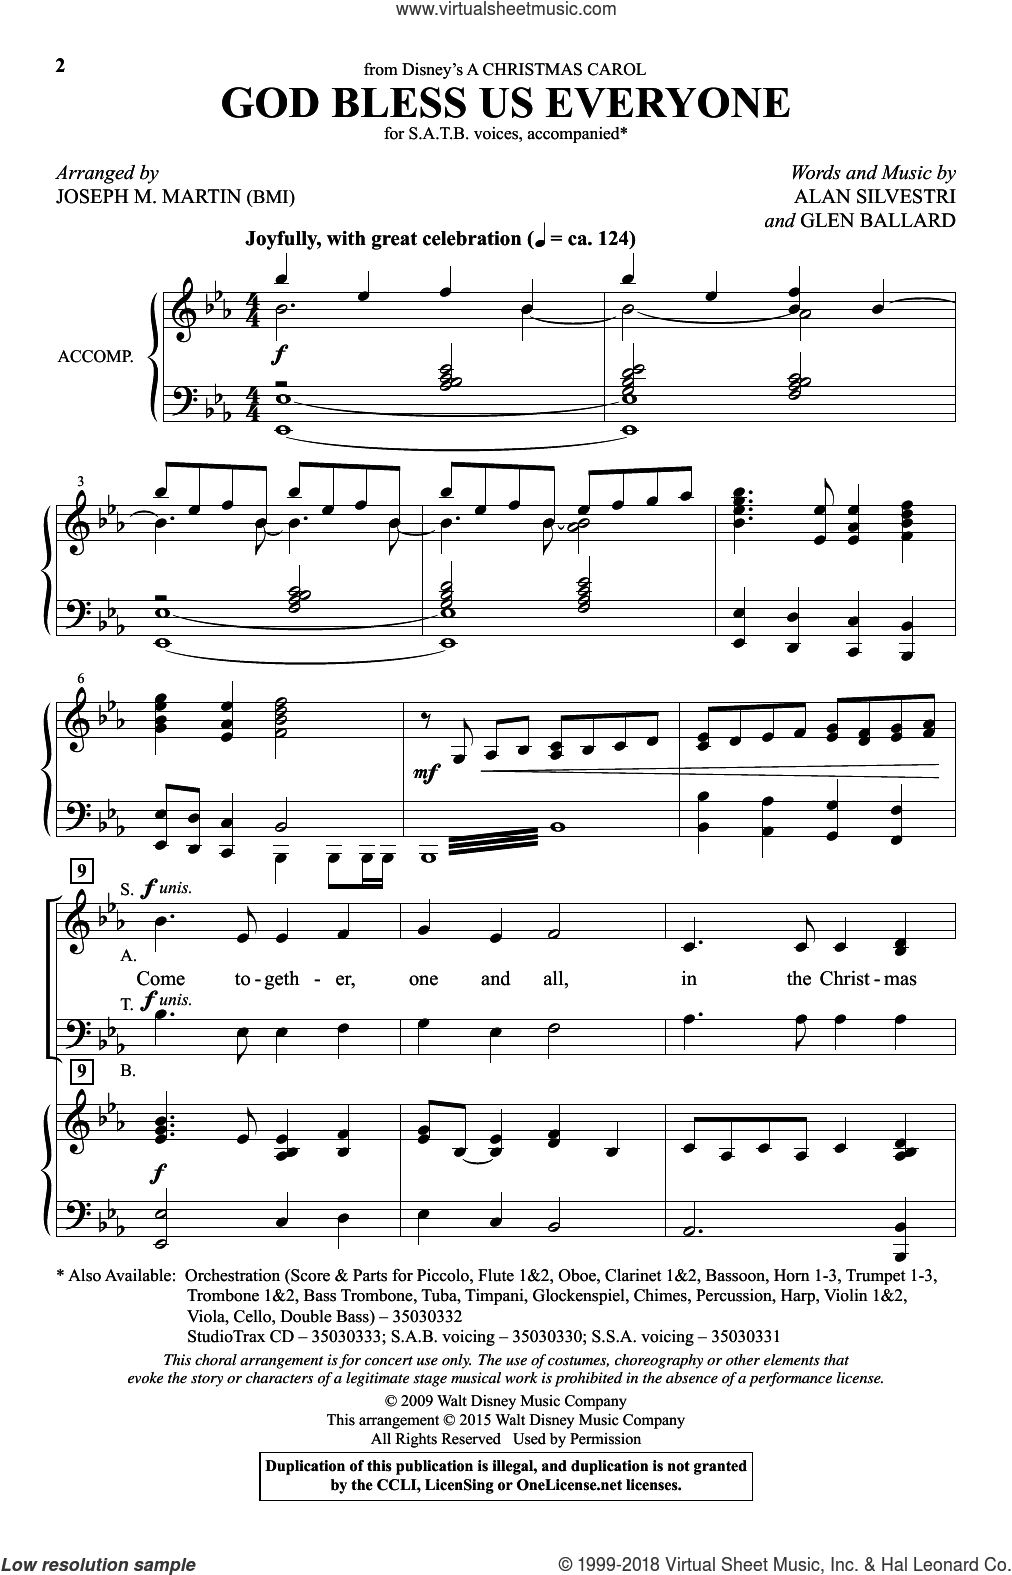 God Bless Us Everyone (from Disney's A Christmas Carol) sheet music for choir (SATB) by Joseph M. Martin, Alan Silvestri, Andrea Bocelli and Glen Ballard, Christmas carol score, intermediate choir (SATB). Score Image Preview.